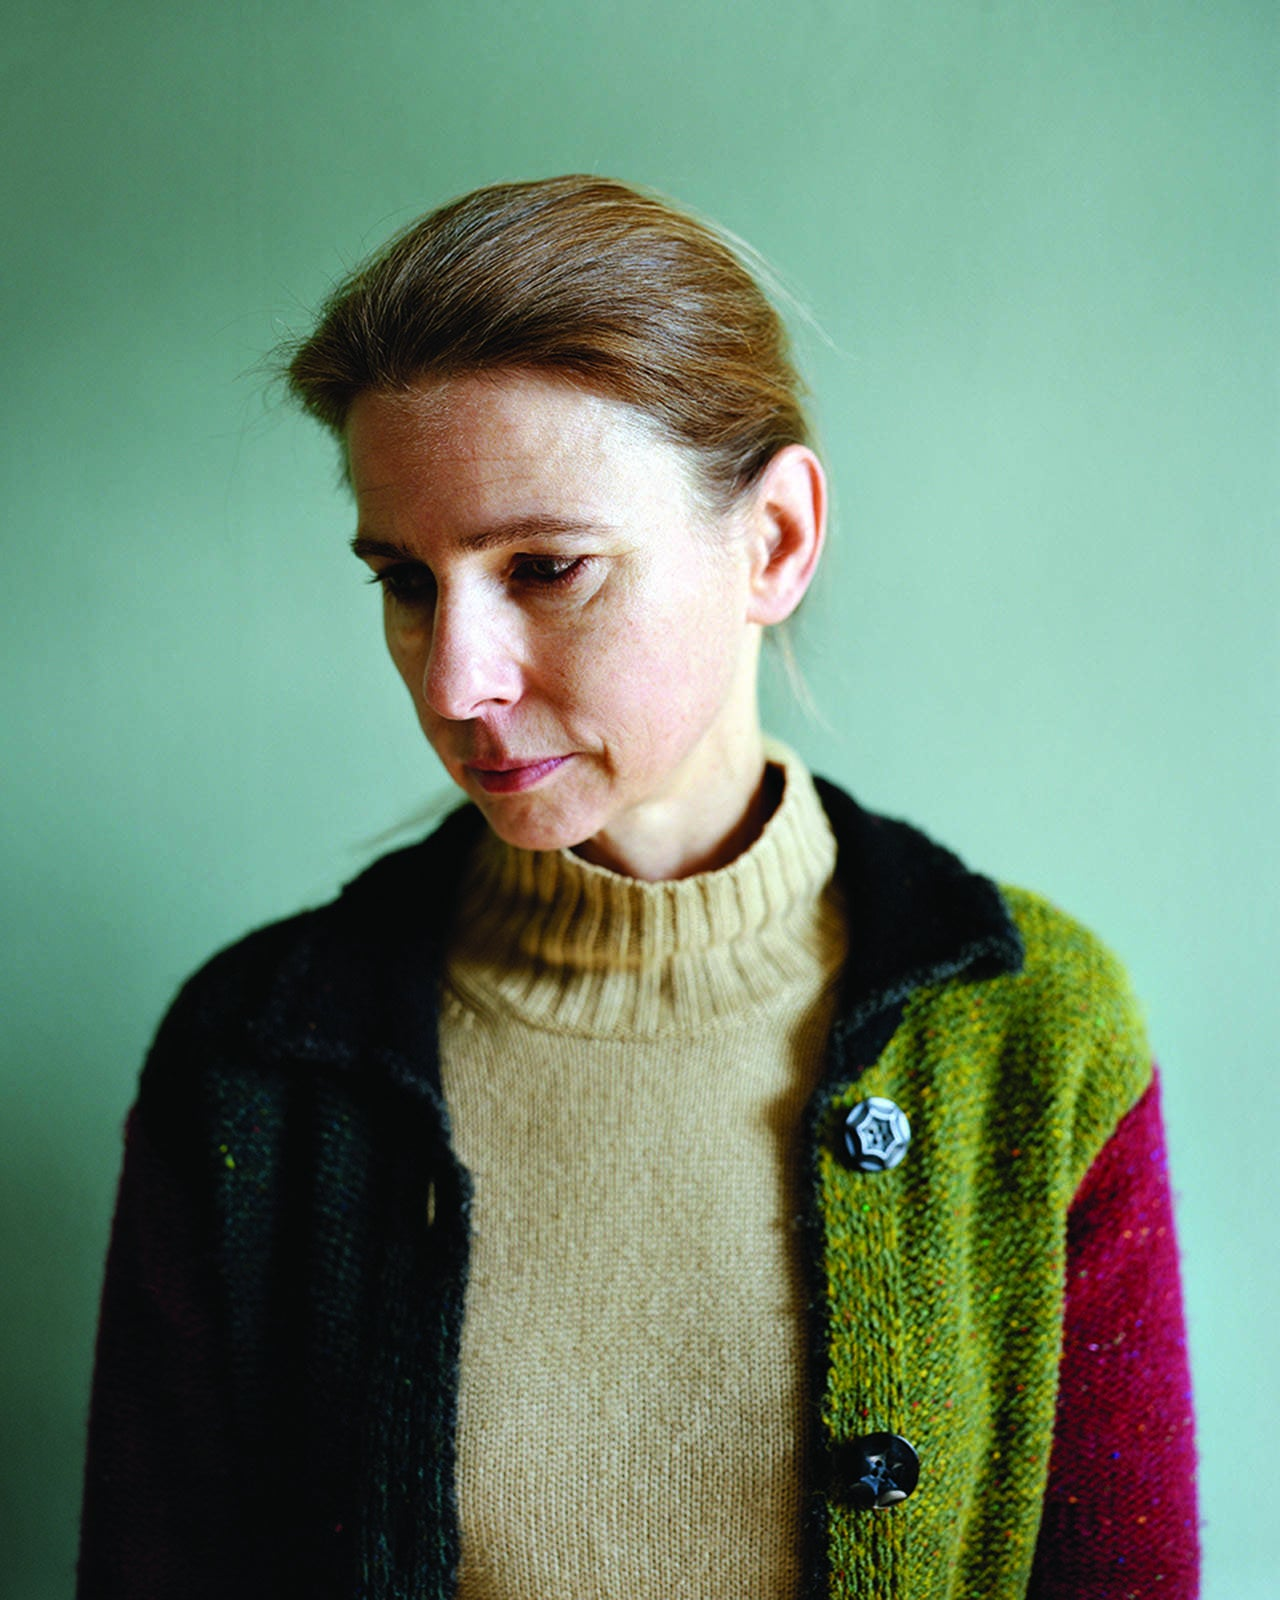 Lionel Shriver's new novel creates a whole world – but can't quite grasp its inhabitants